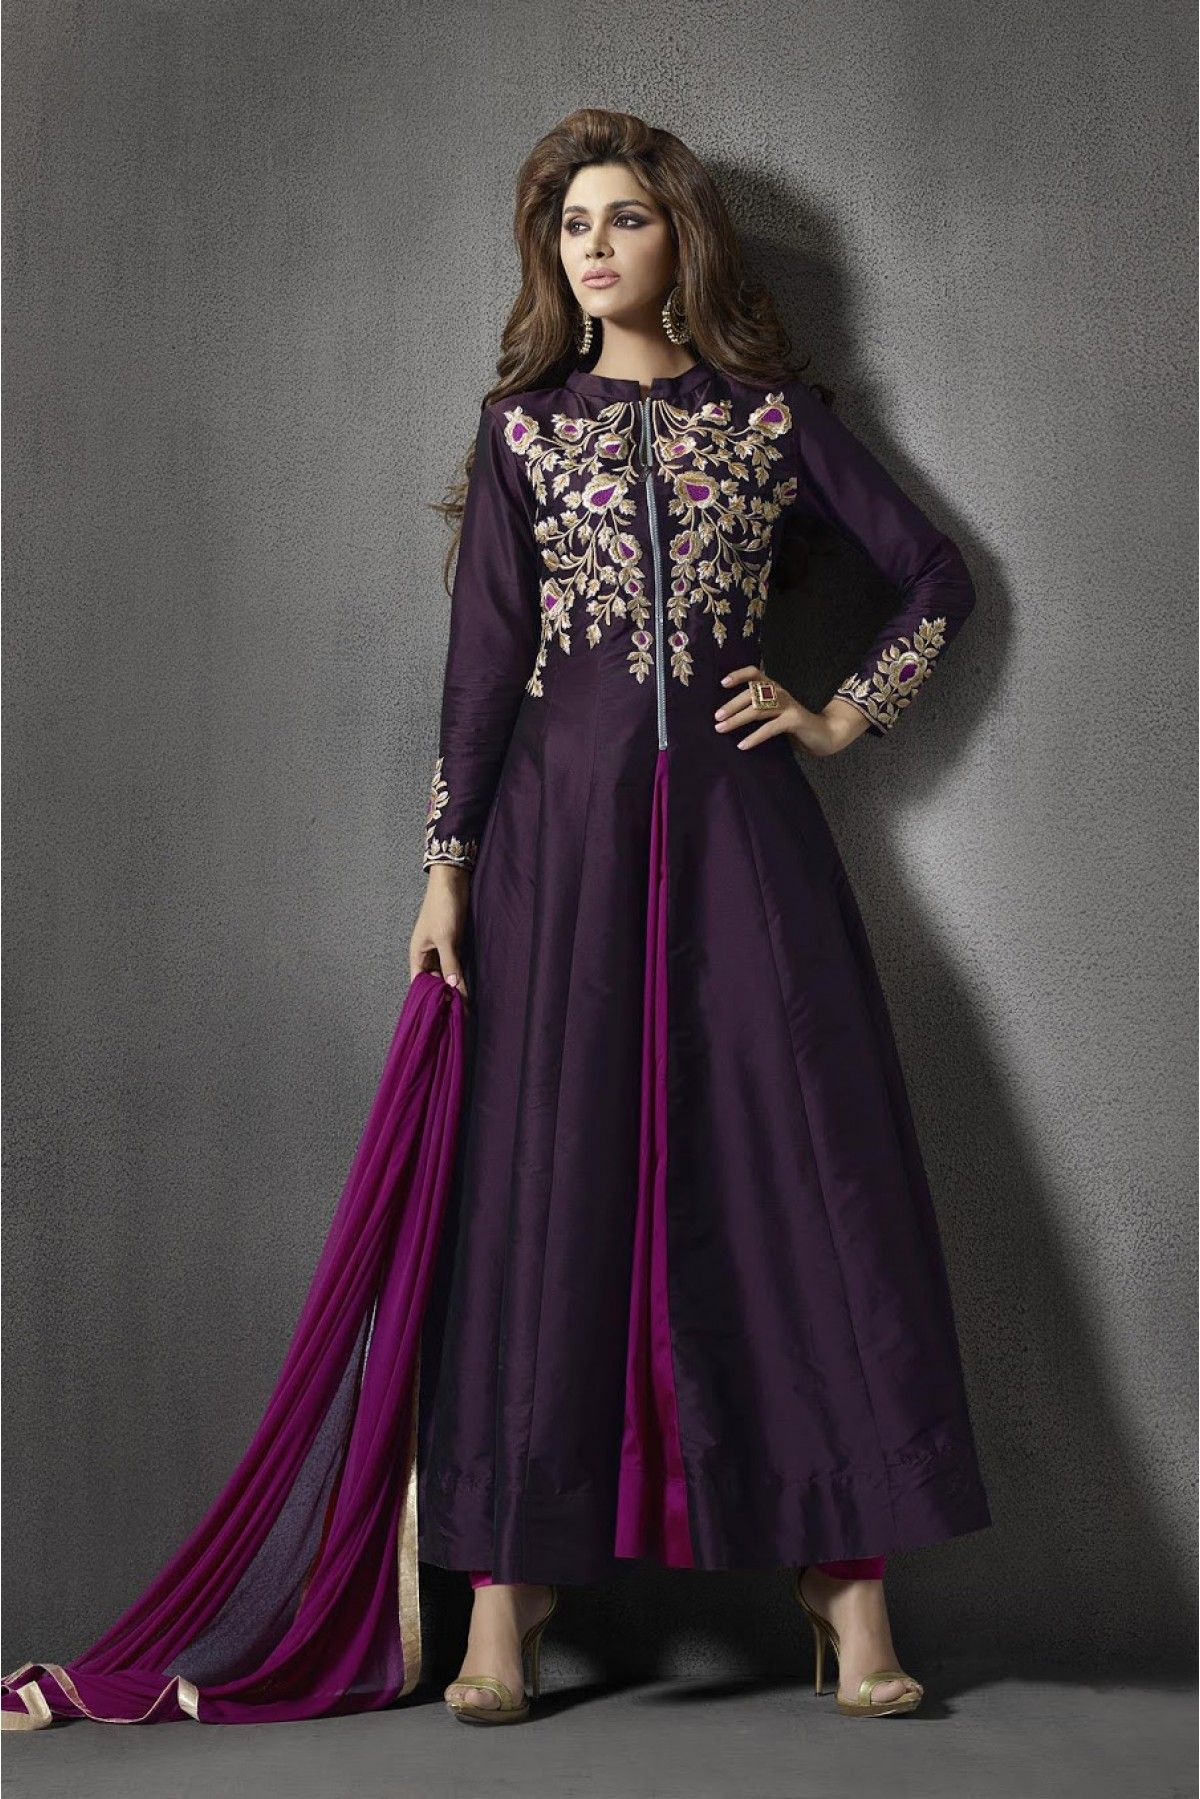 39ab7faa54e Purple Colour Silk Fabric Party Wear Unstitched Anarkali Suit Comes With  Matching Bottom and Dupatta. This Suit Is Crafted With Resham Work